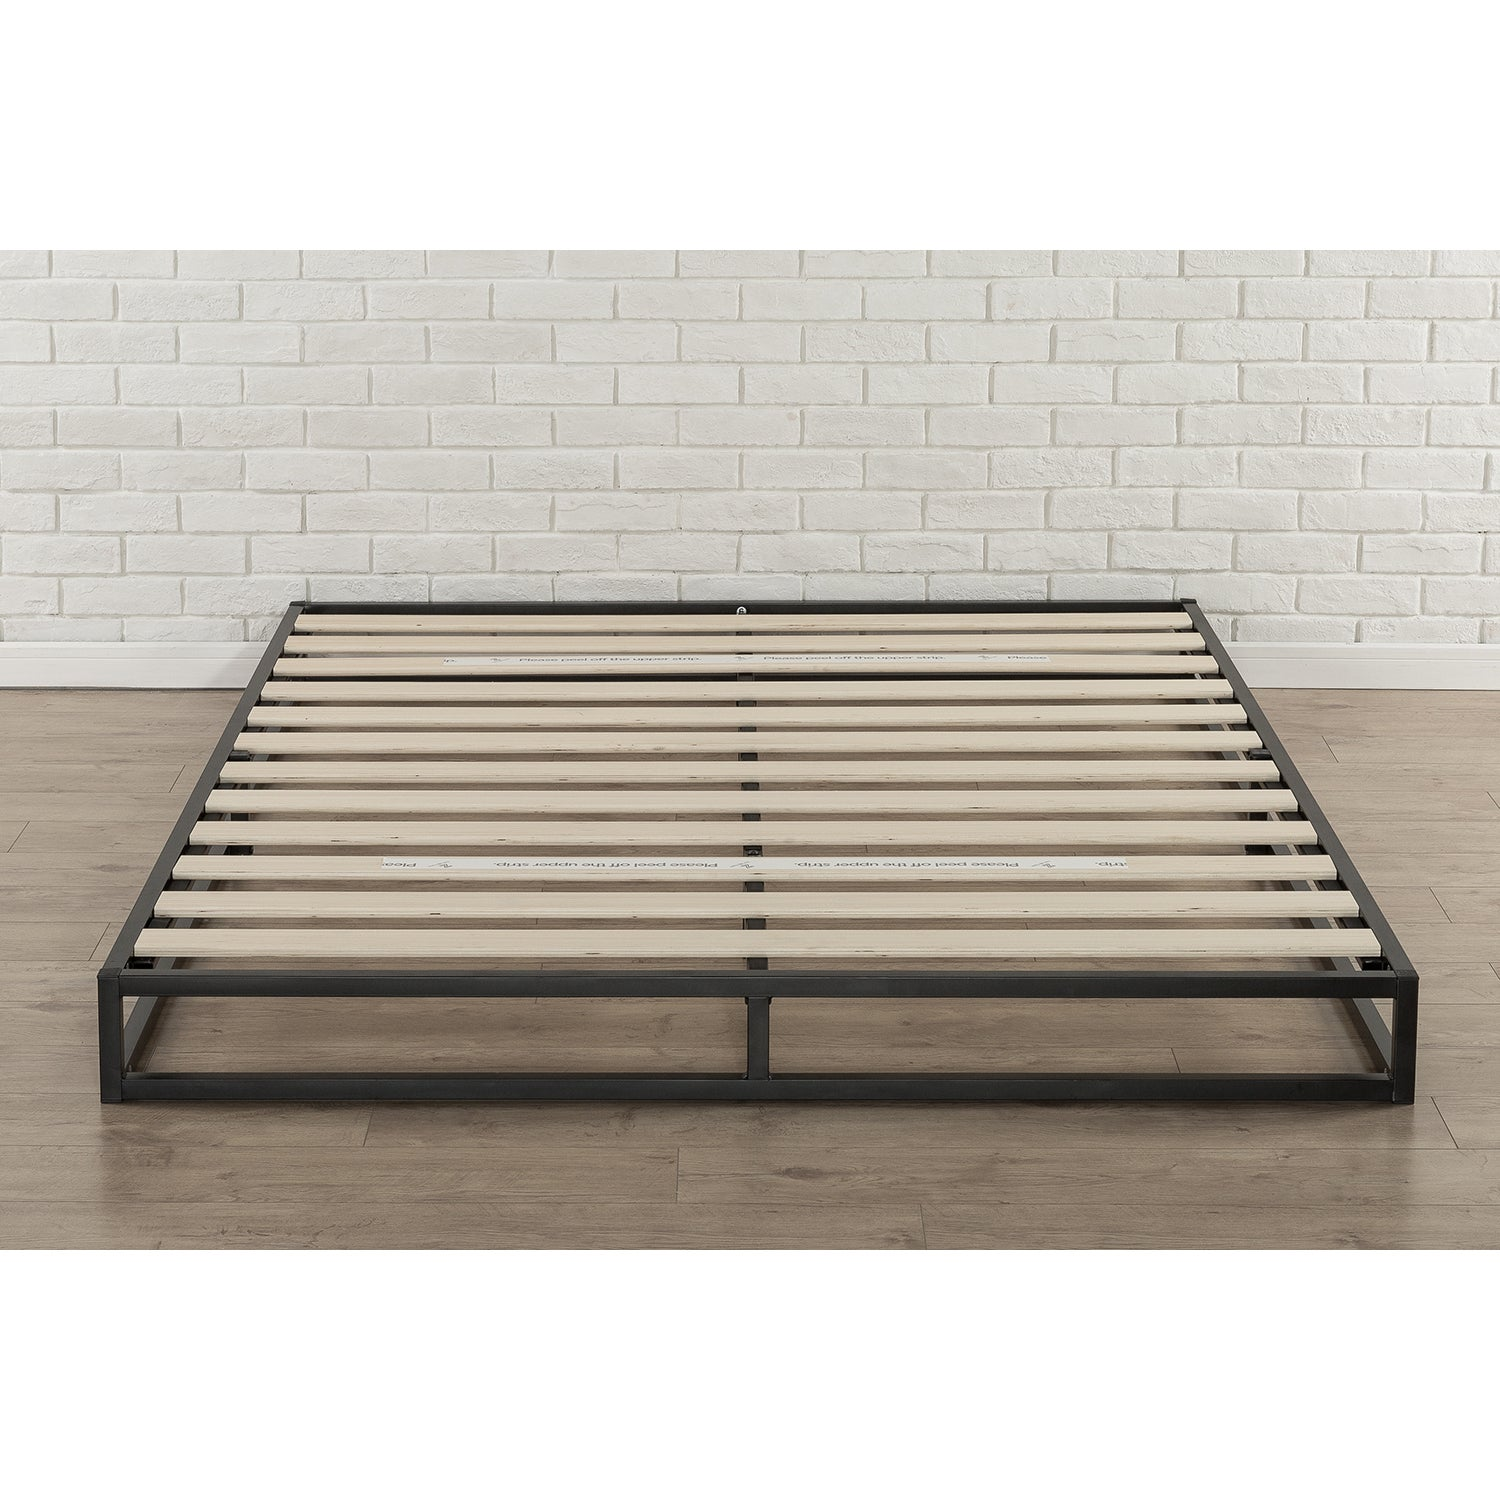 Priage By Zinus 6 Inch Full Size Platforma Low Profile Bed Frame